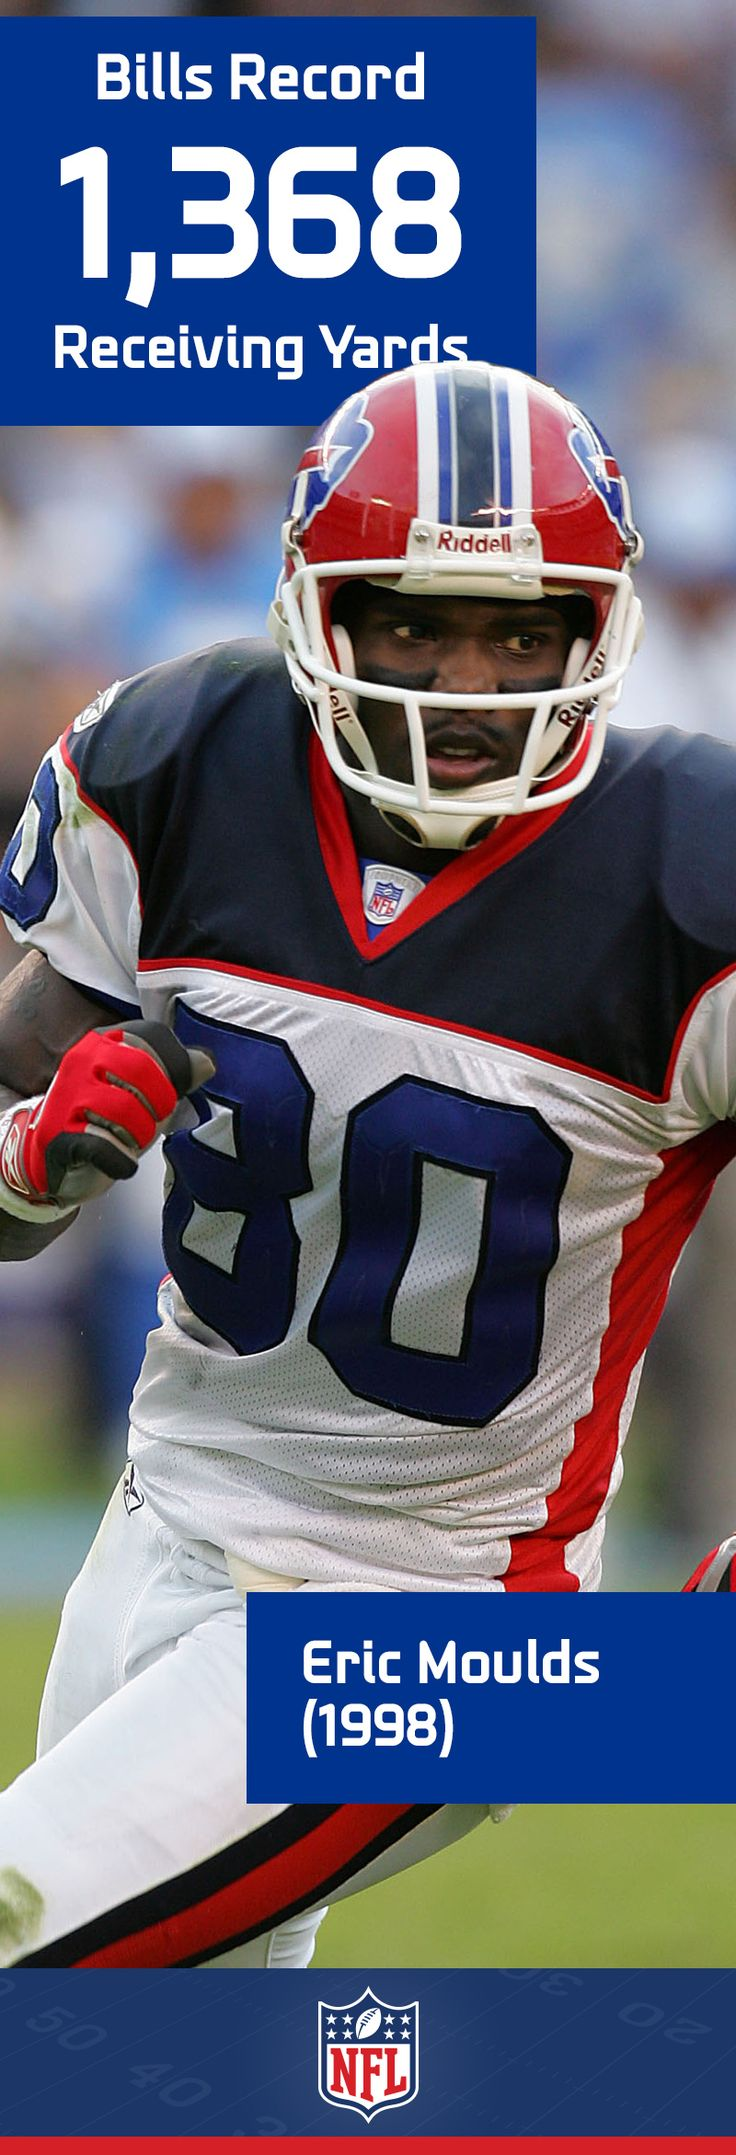 One of the top receivers of his era, Eric Moulds holds the Buffalo Bills' record of 1,368 receiving yards, which he set during his breakout 1998 season.